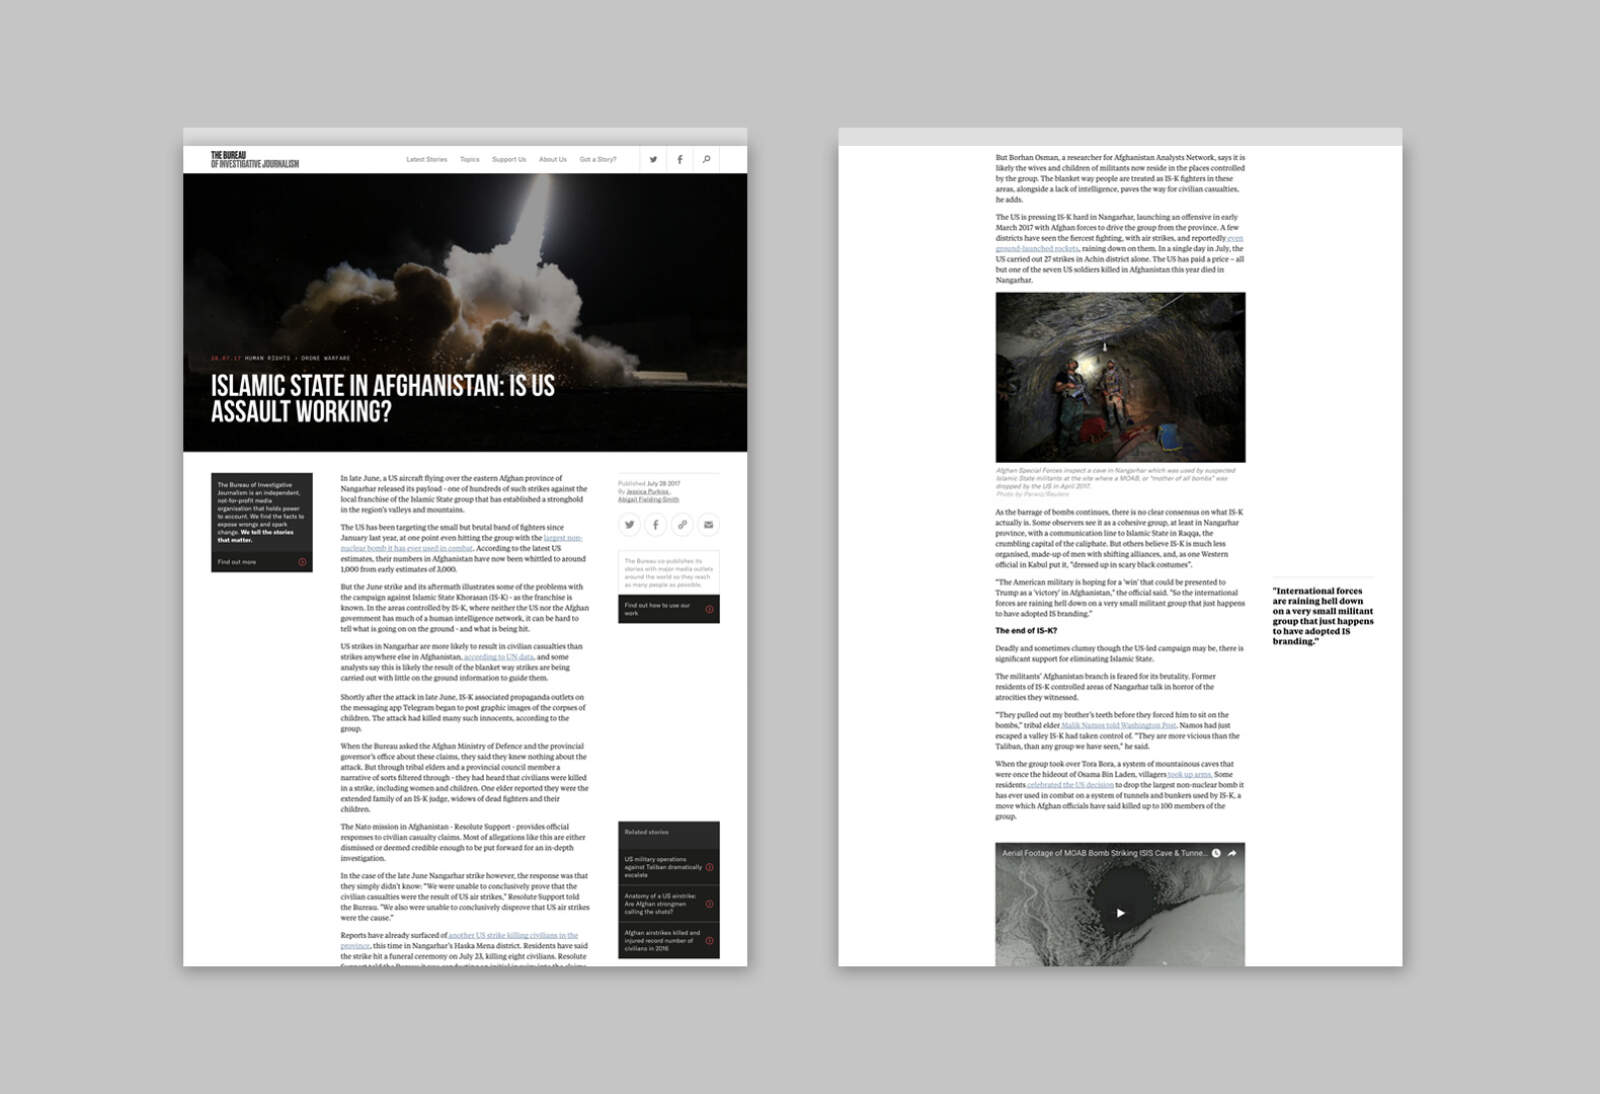 A story page from The Bureau of Investigative Journalism website, shown in a desktop browser.